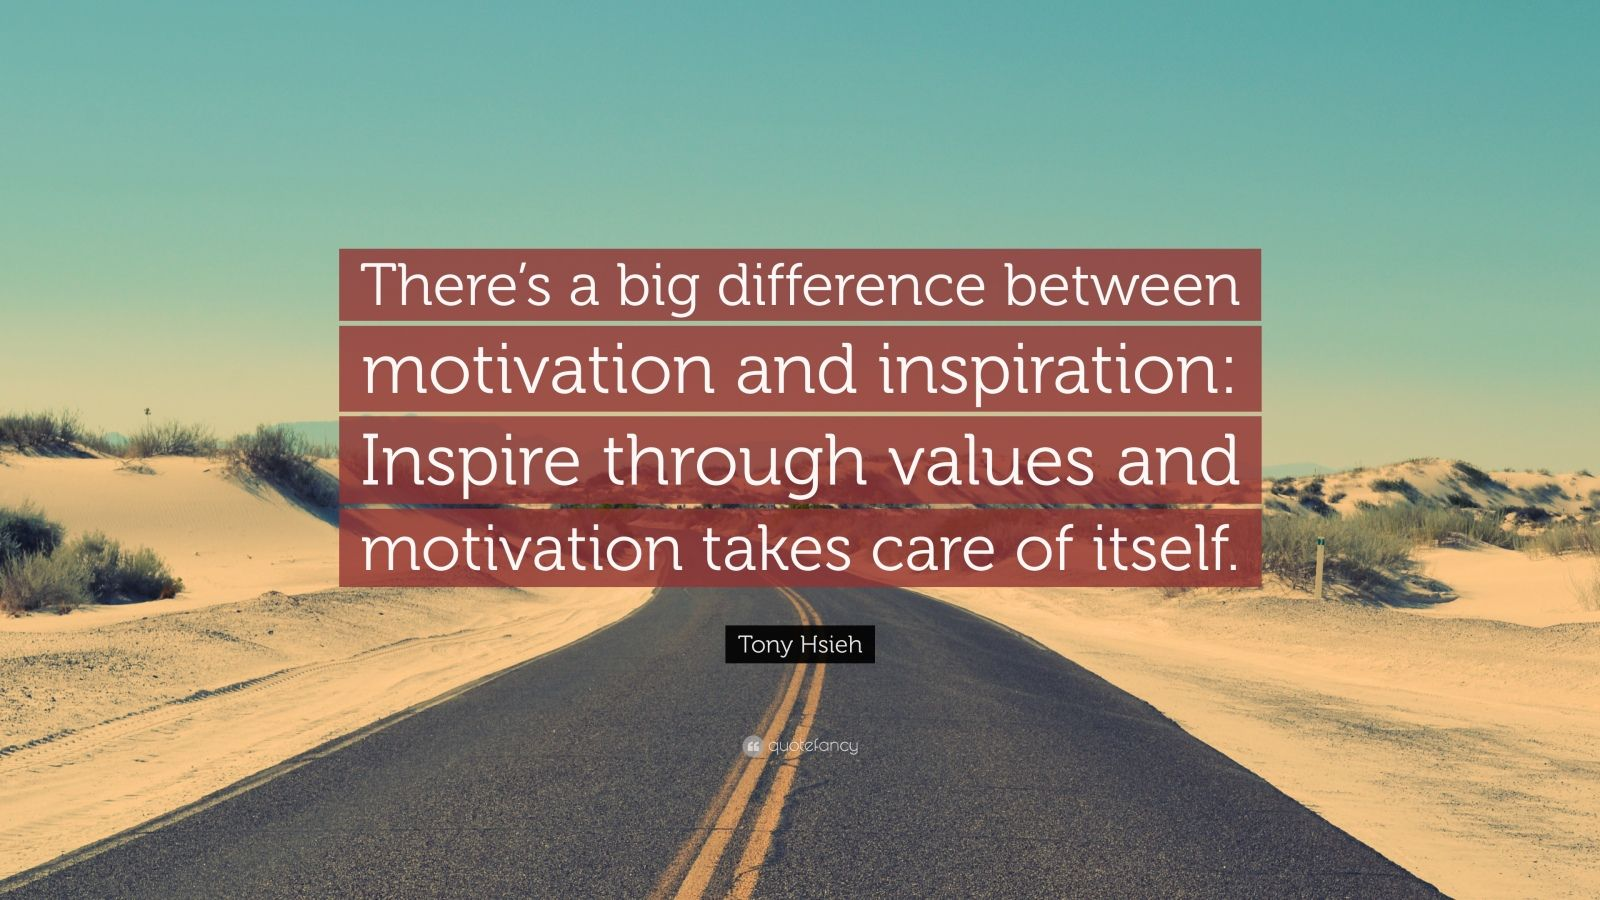 """Tony Hsieh Quote: """"There's a big difference between motivation and inspiration: Inspire through values and motivation takes care of itself."""""""